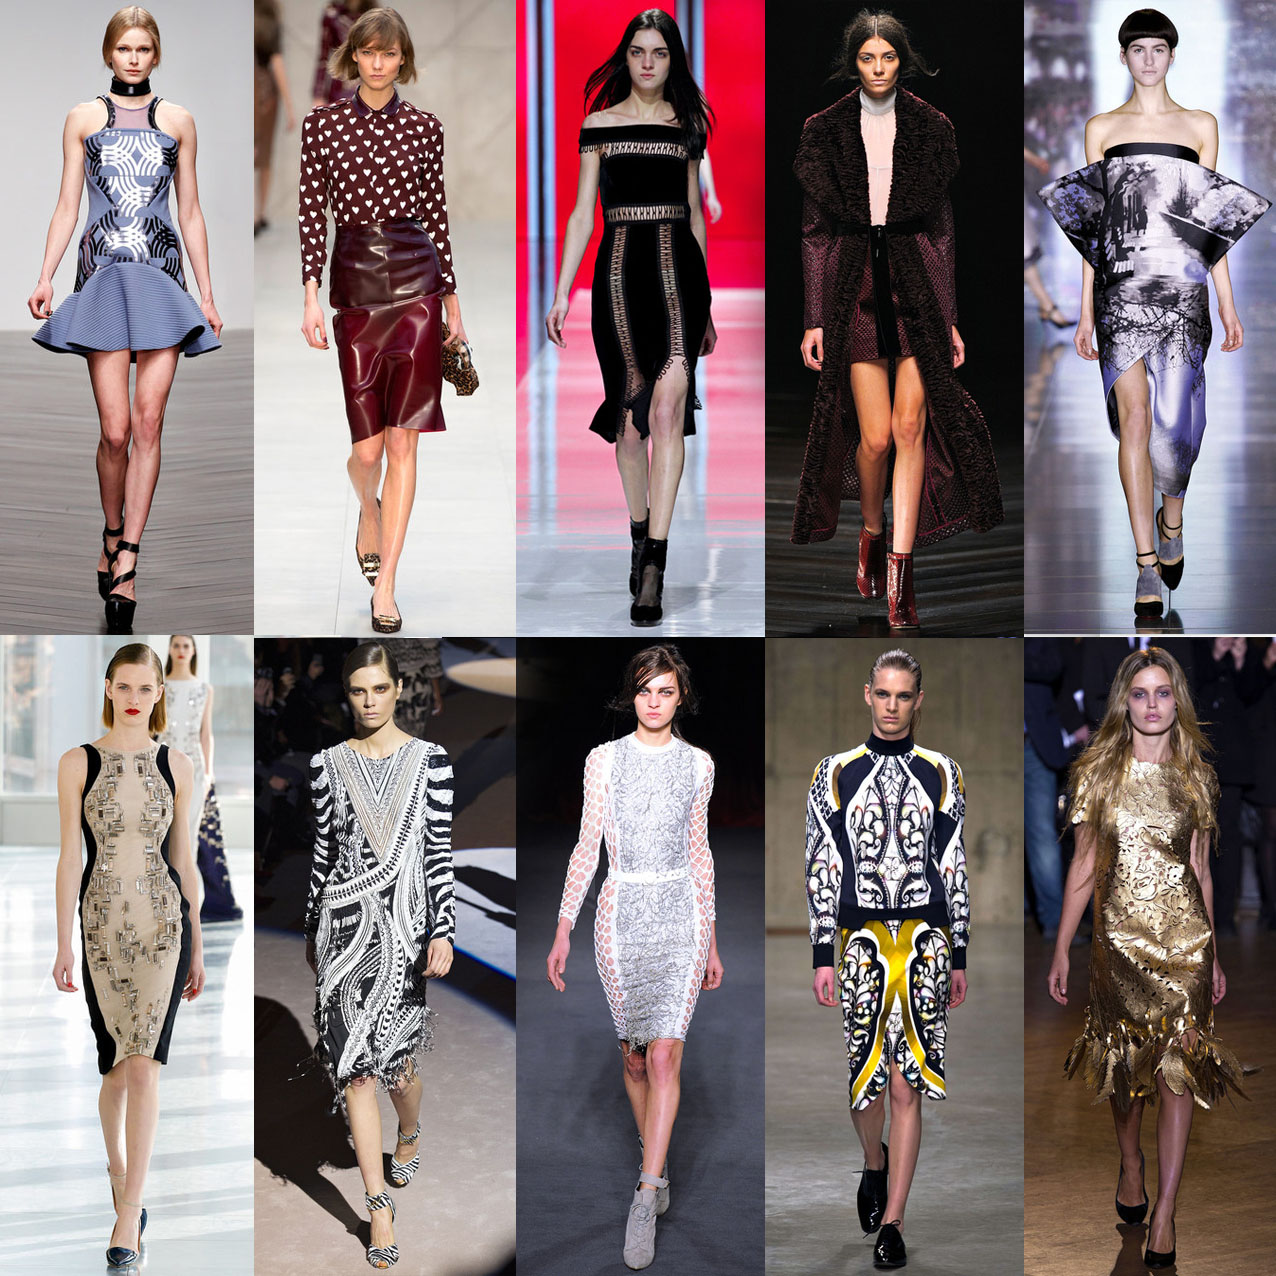 My top 10 London Fashion Week A/W 2013 collections!